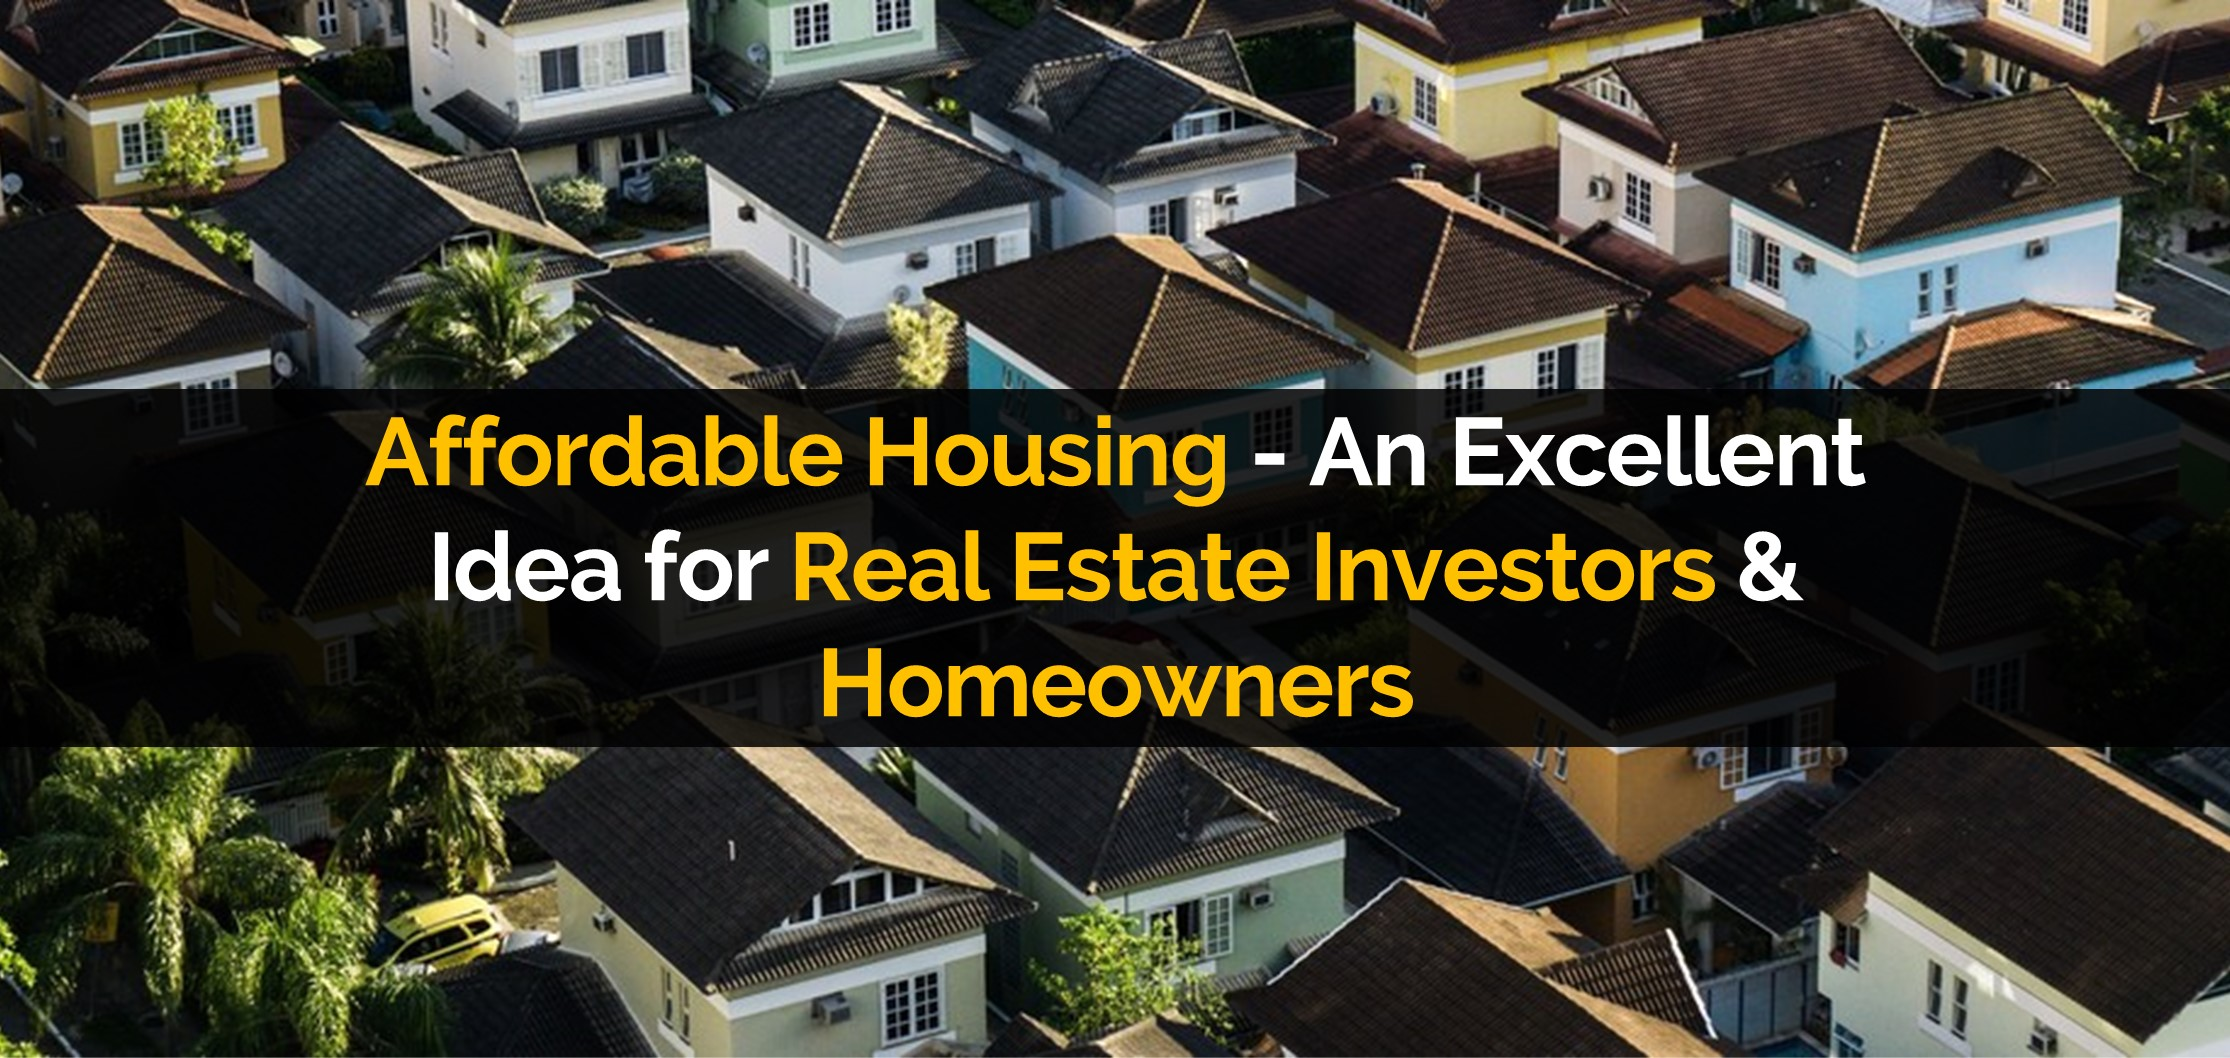 Affordable Housing - An Excellent Idea for Real Estate Investors & Homeowners